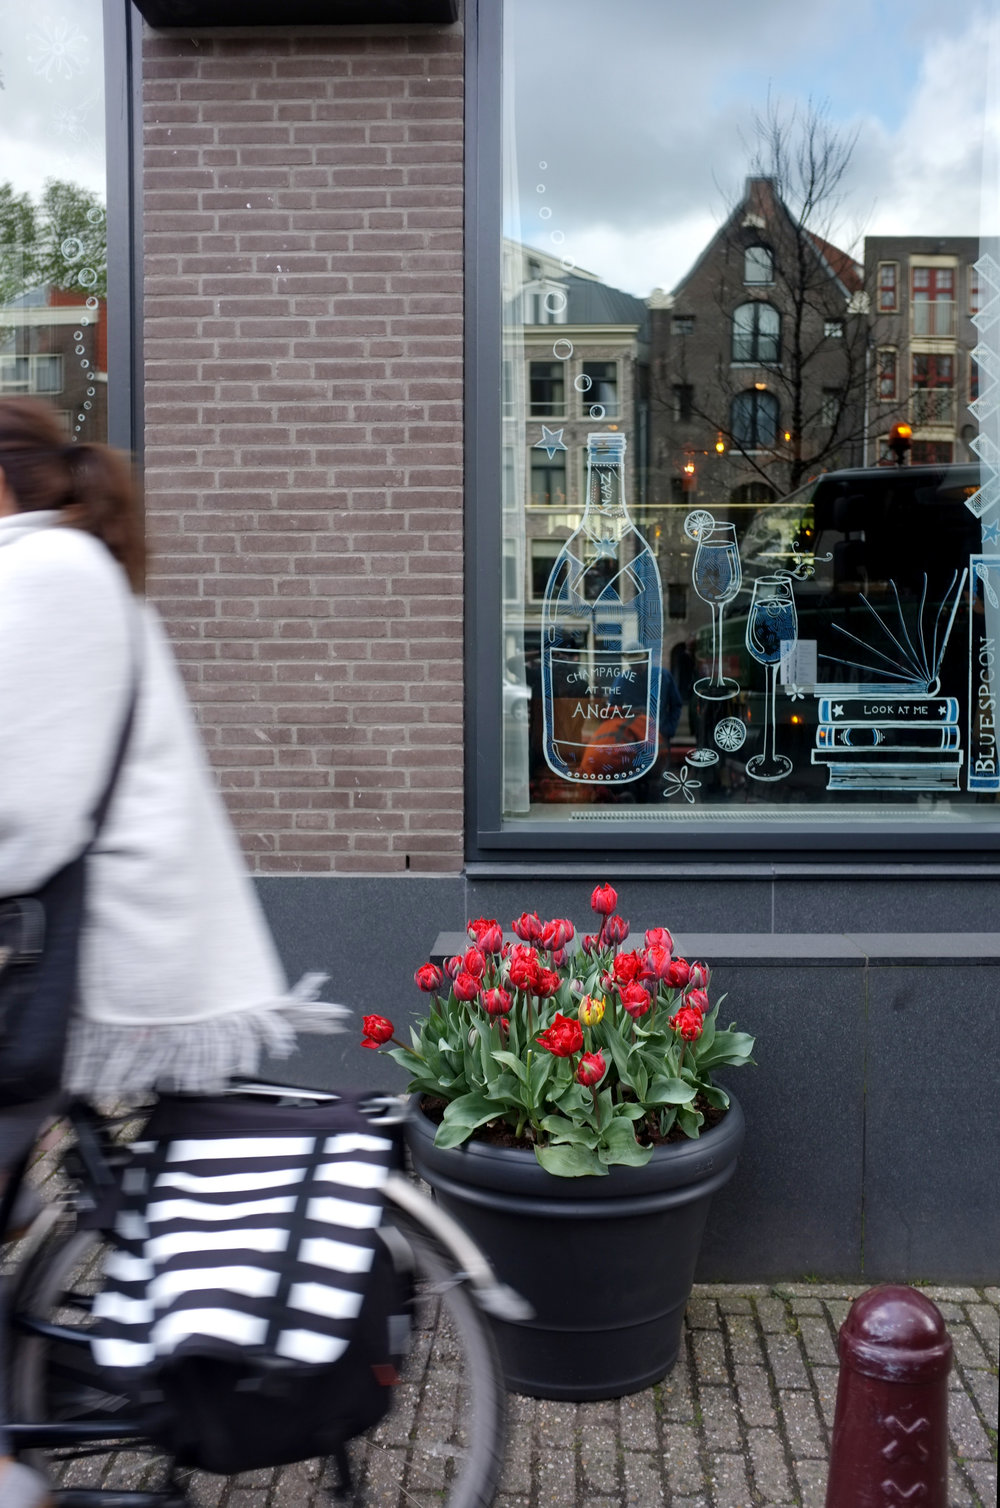 . . . . . #apbloem #florist #amsterdam #bloemist #kerkstraat #bloemen #stijl #styling #floristry #bloemenwinkel #floral #artisan #boutique #kleur #colour #lifestyle #lente #spring #dsfloral #nature #eggs #easter #tulips #luxury #marcelwanders #paasdag #pasen #chocolate #dsfloral #bar #interior #interieur #floral #bloemisten #tulpenfestival